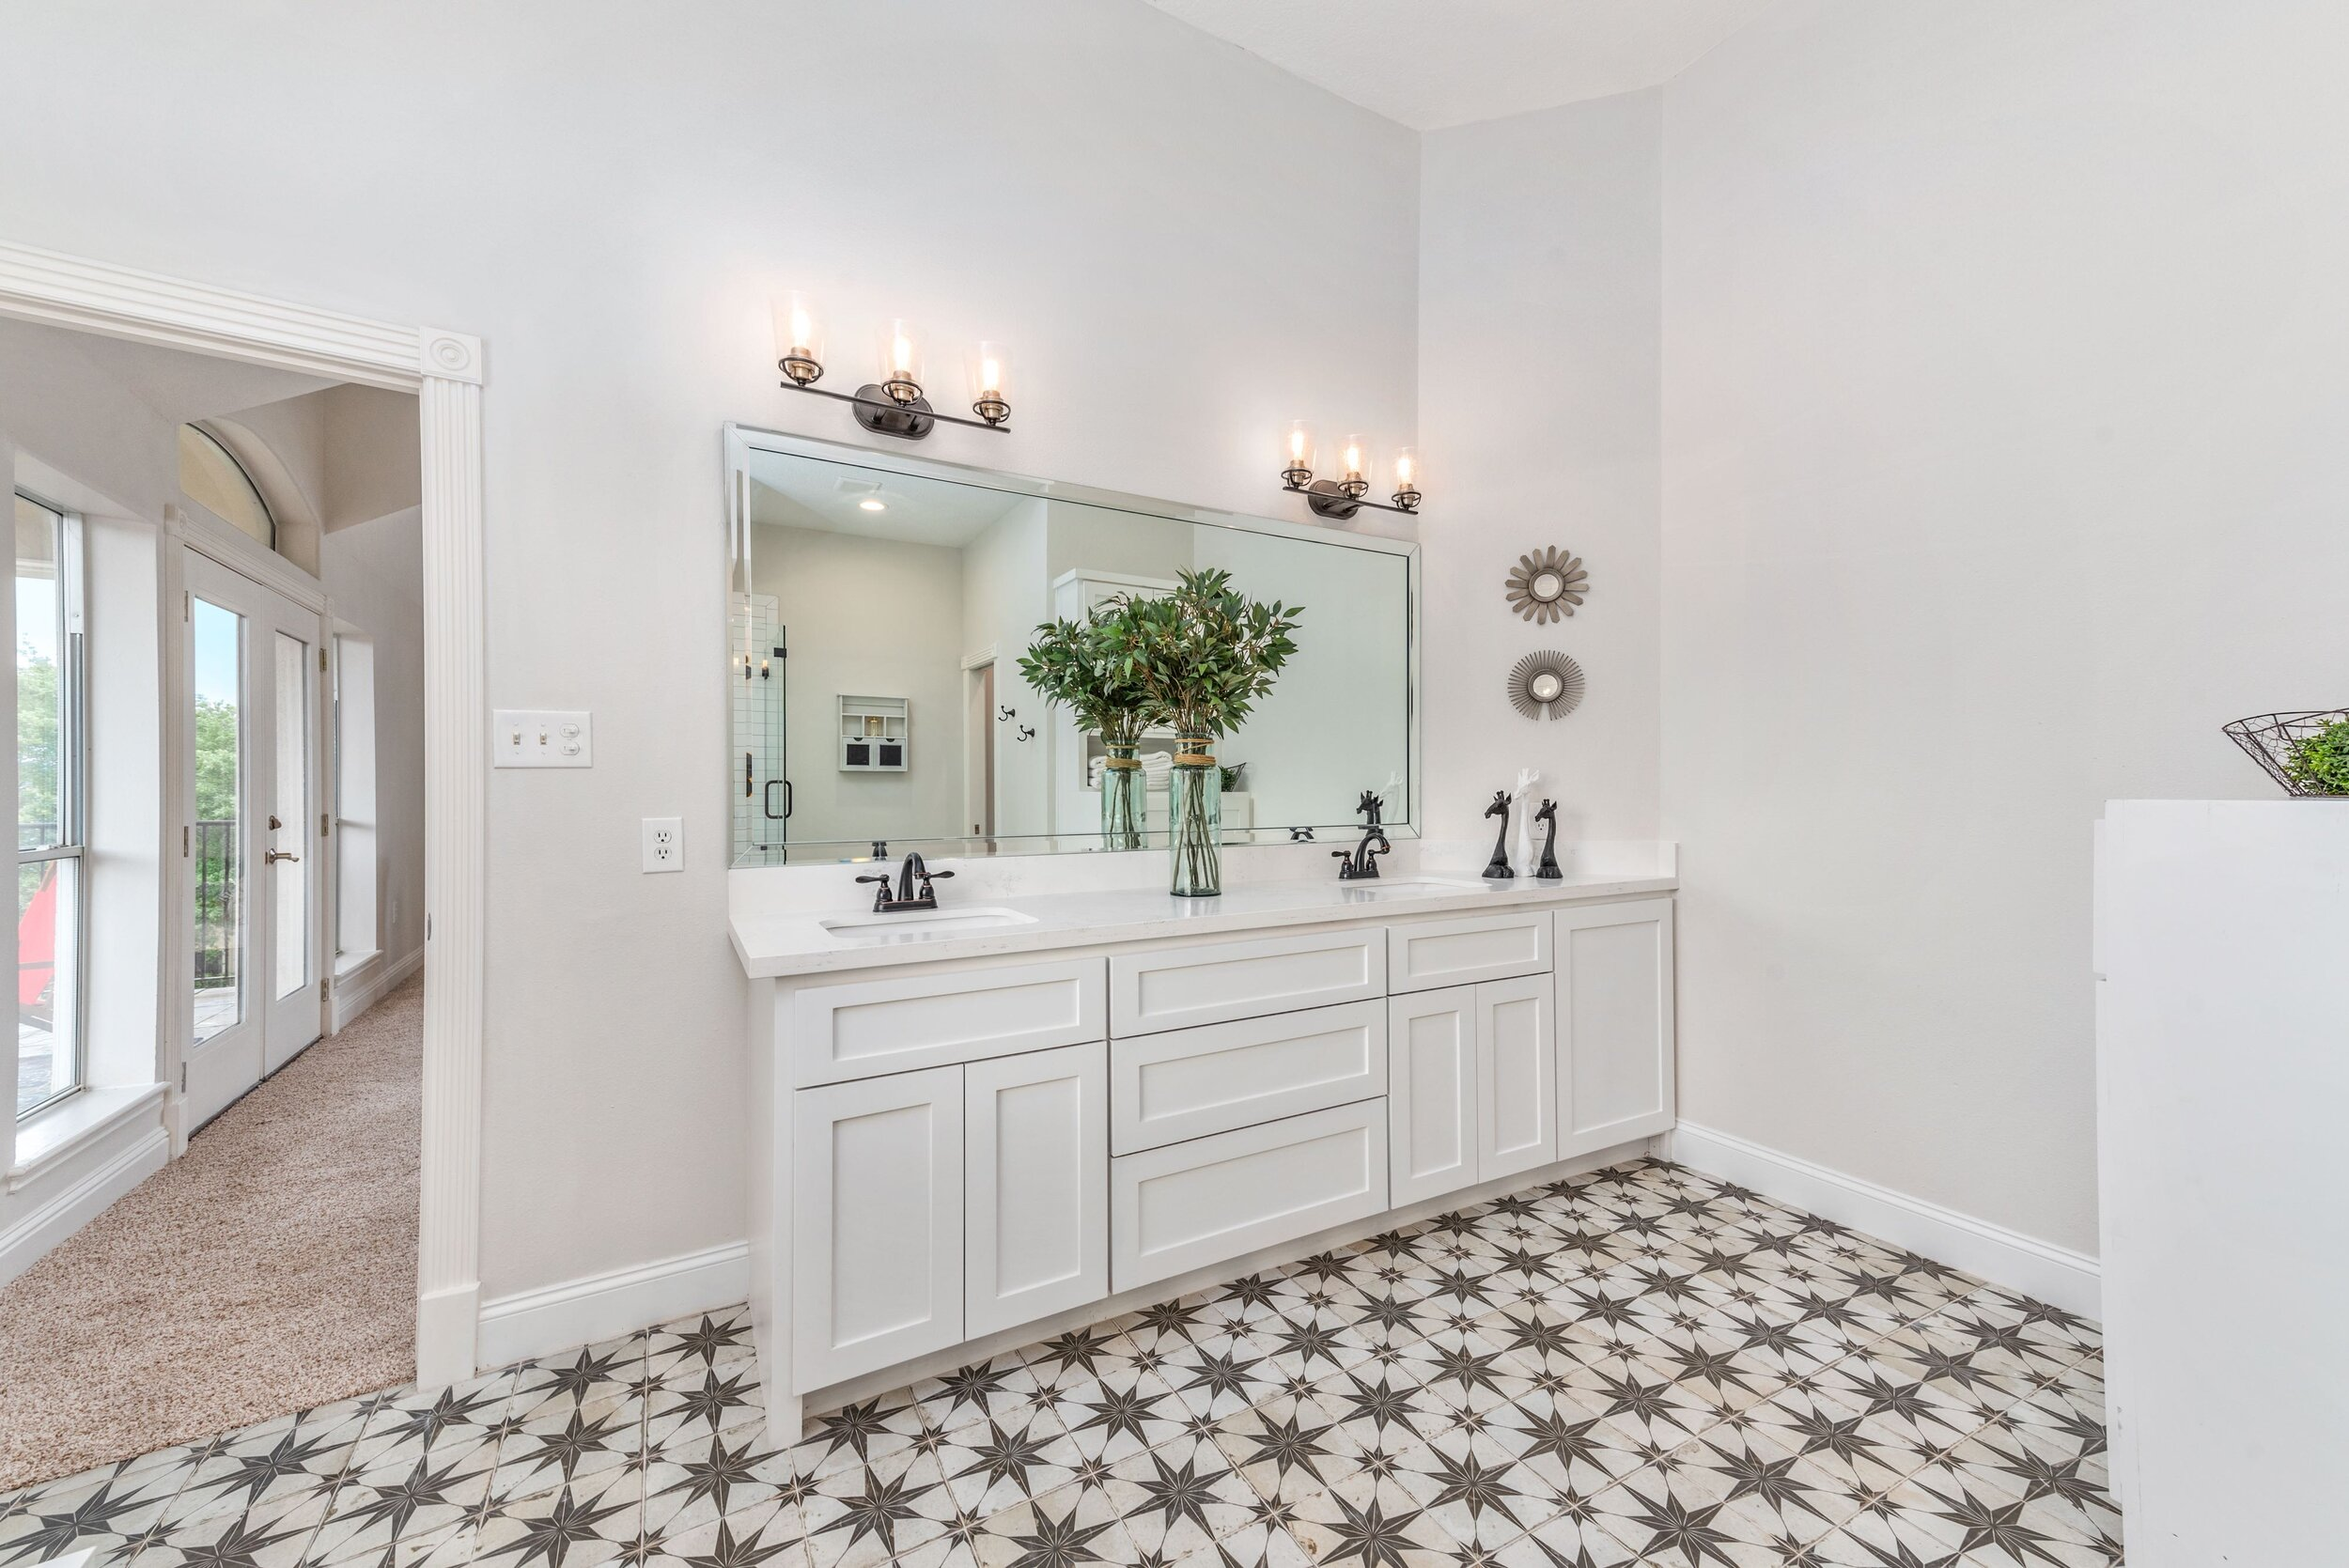 Master bathroom renovation, frameless mirror, his and hers vanities, his and hers sinks, farmhouse style lighting, encaustic tile floors, trim and base boards, shaker style cabinets.